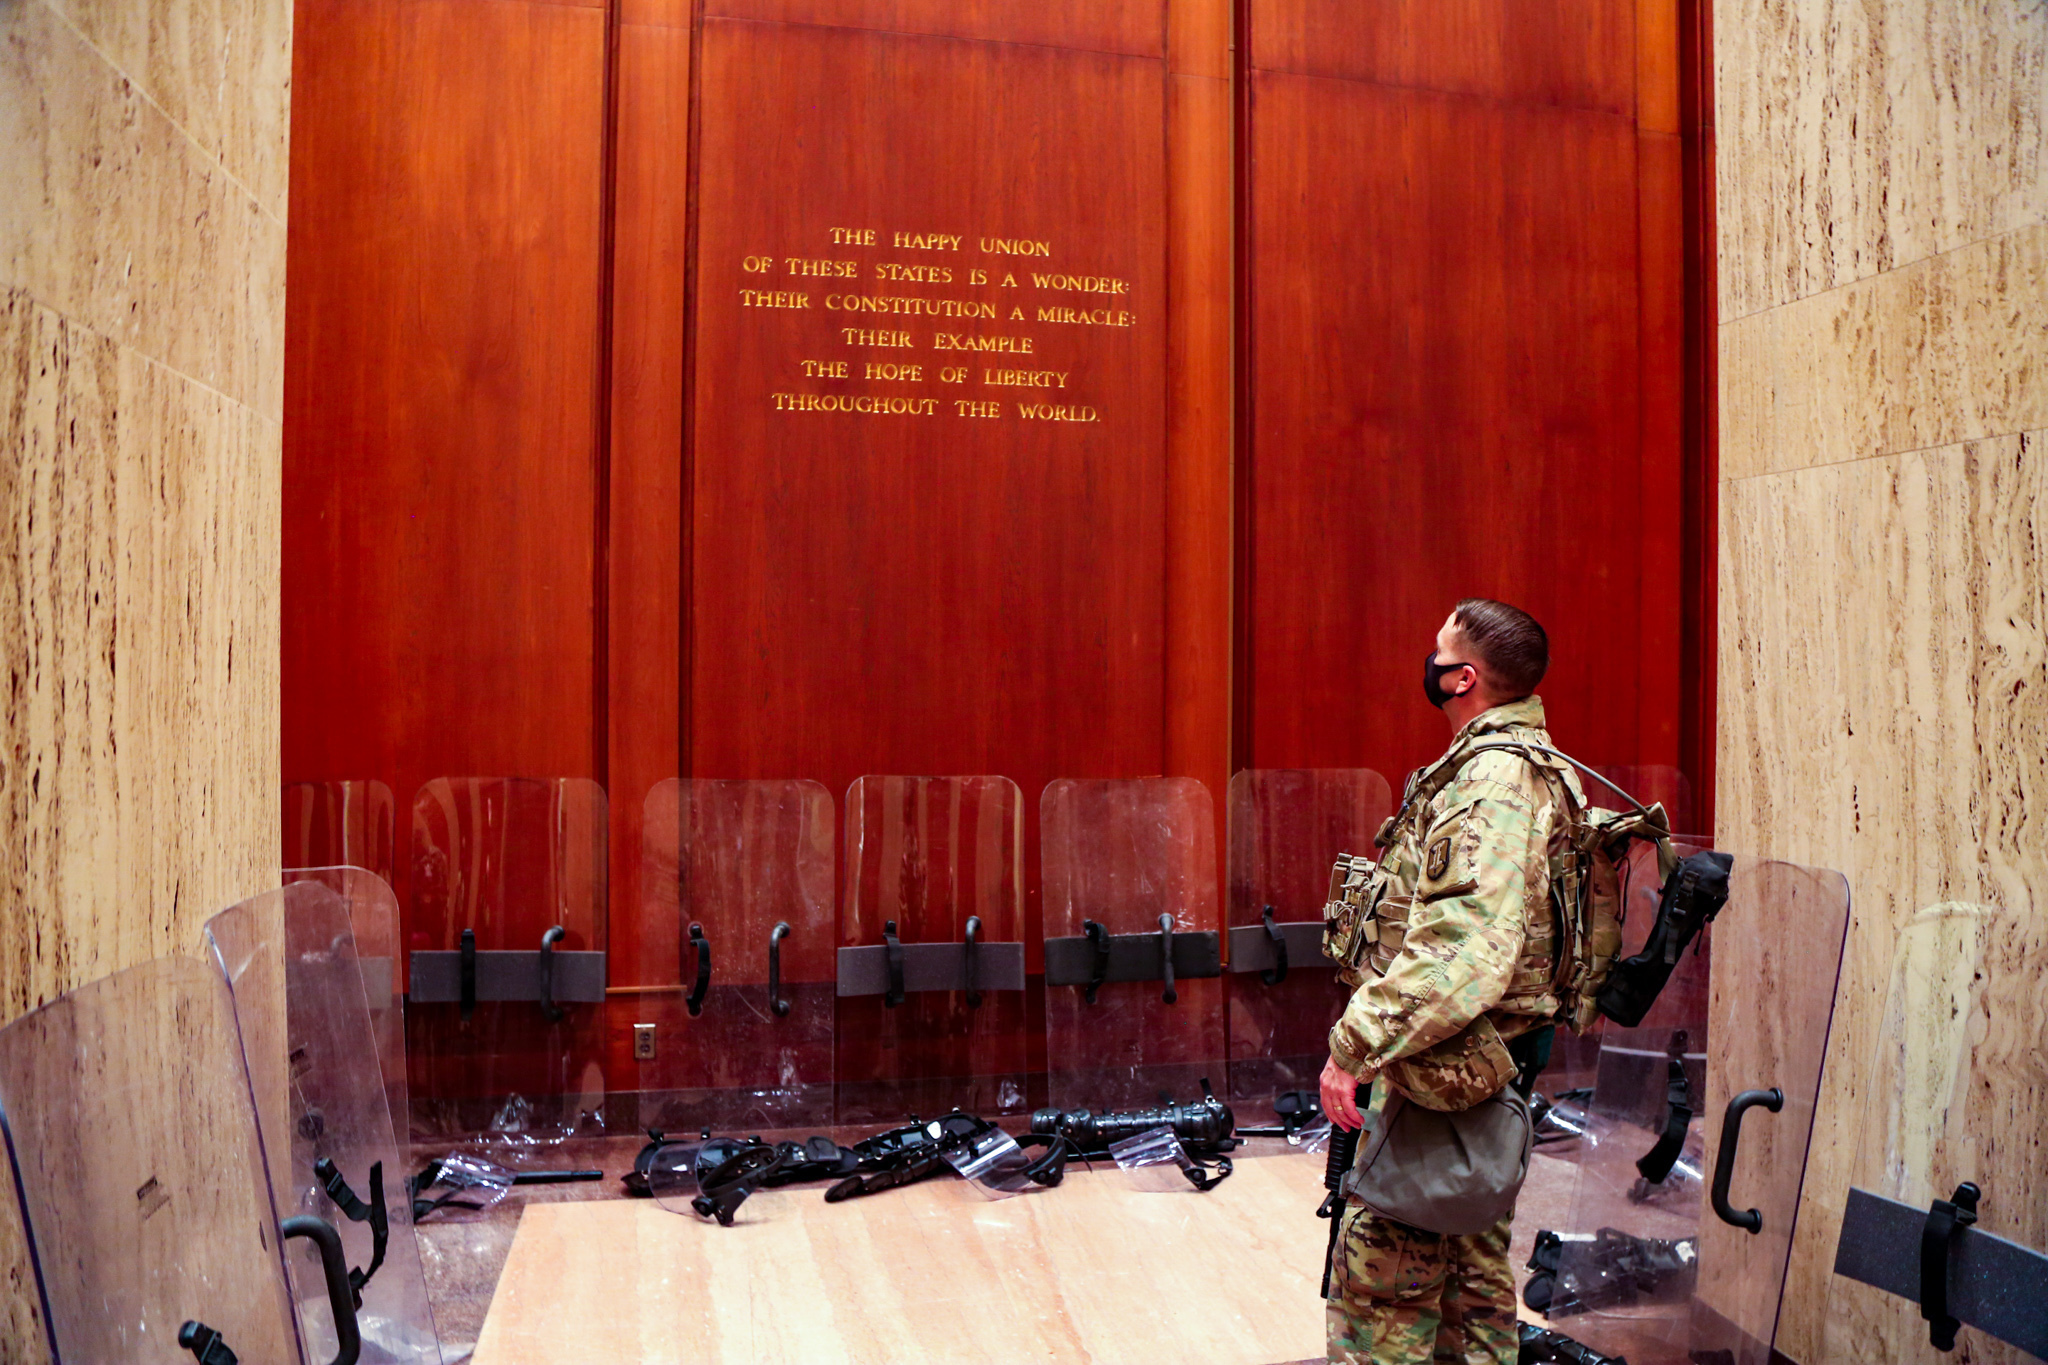 A U.S. Soldier with the Utah National Guard, reads a quote on the wall of the James Madison Building, Jan.18, 2021. At least 25,000 National Guard men and women have been authorized to conduct security, communication and logistical missions in support of federal and District authorities leading up and through the 59th Presidential Inauguration. (U.S. Army National Guard photo by Spc. Christopher Hall)